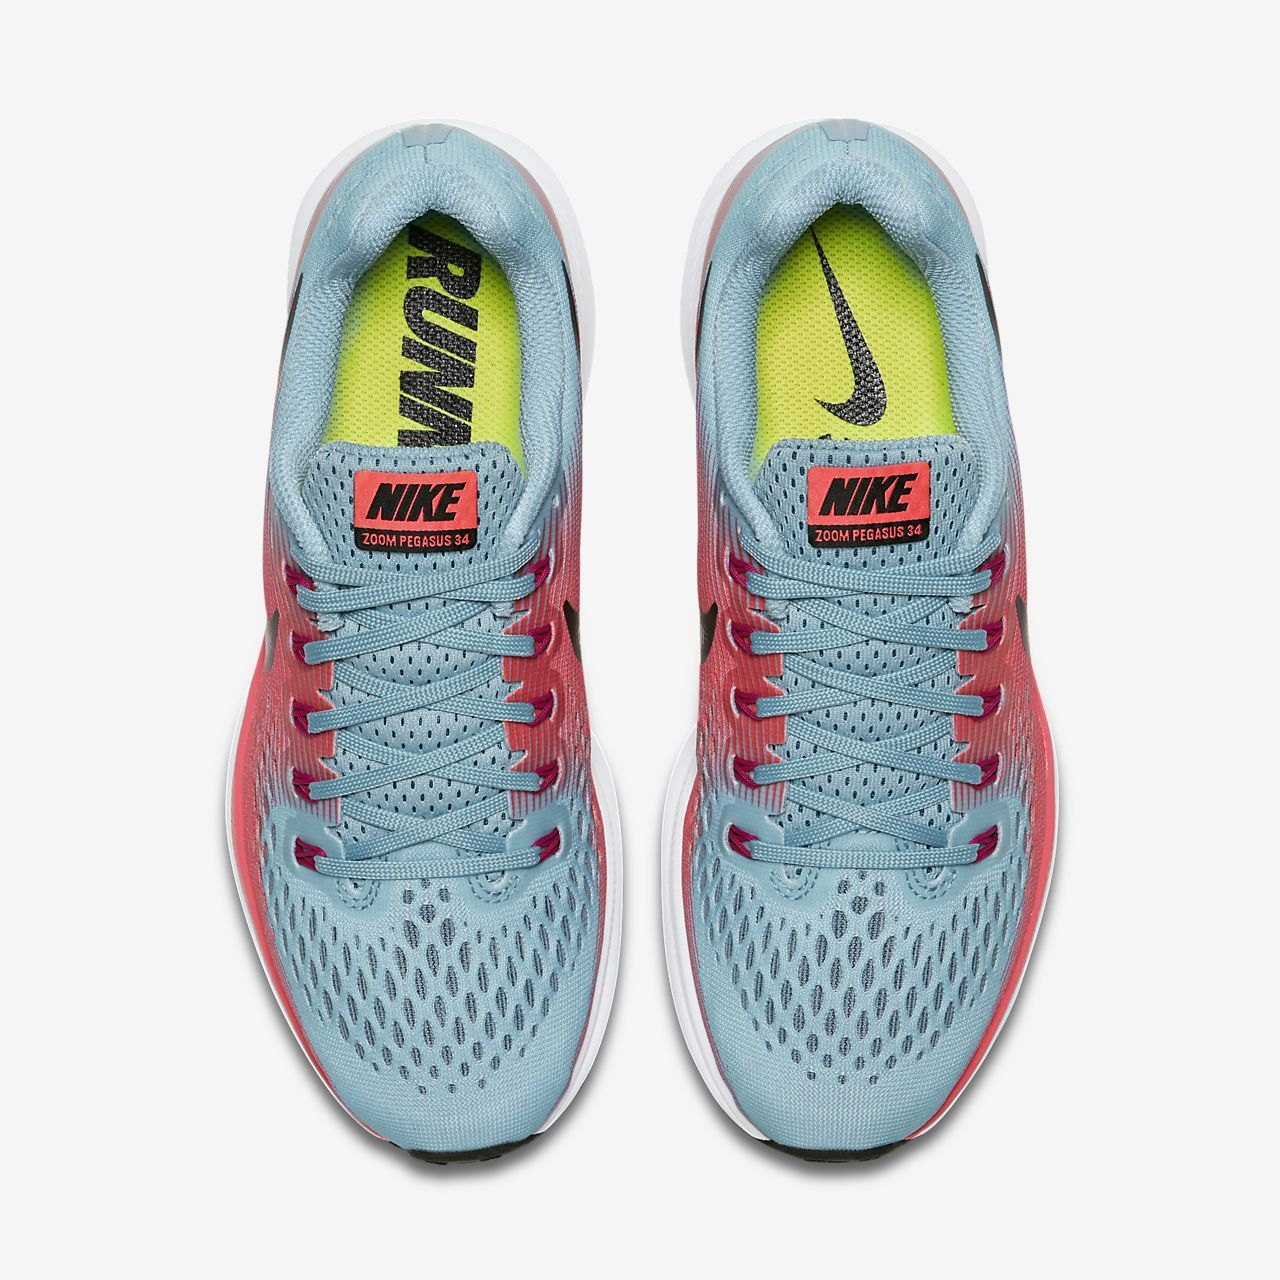 9e6cca07284a Nike Air Zoom Pegasus 34 Women s Running Shoe